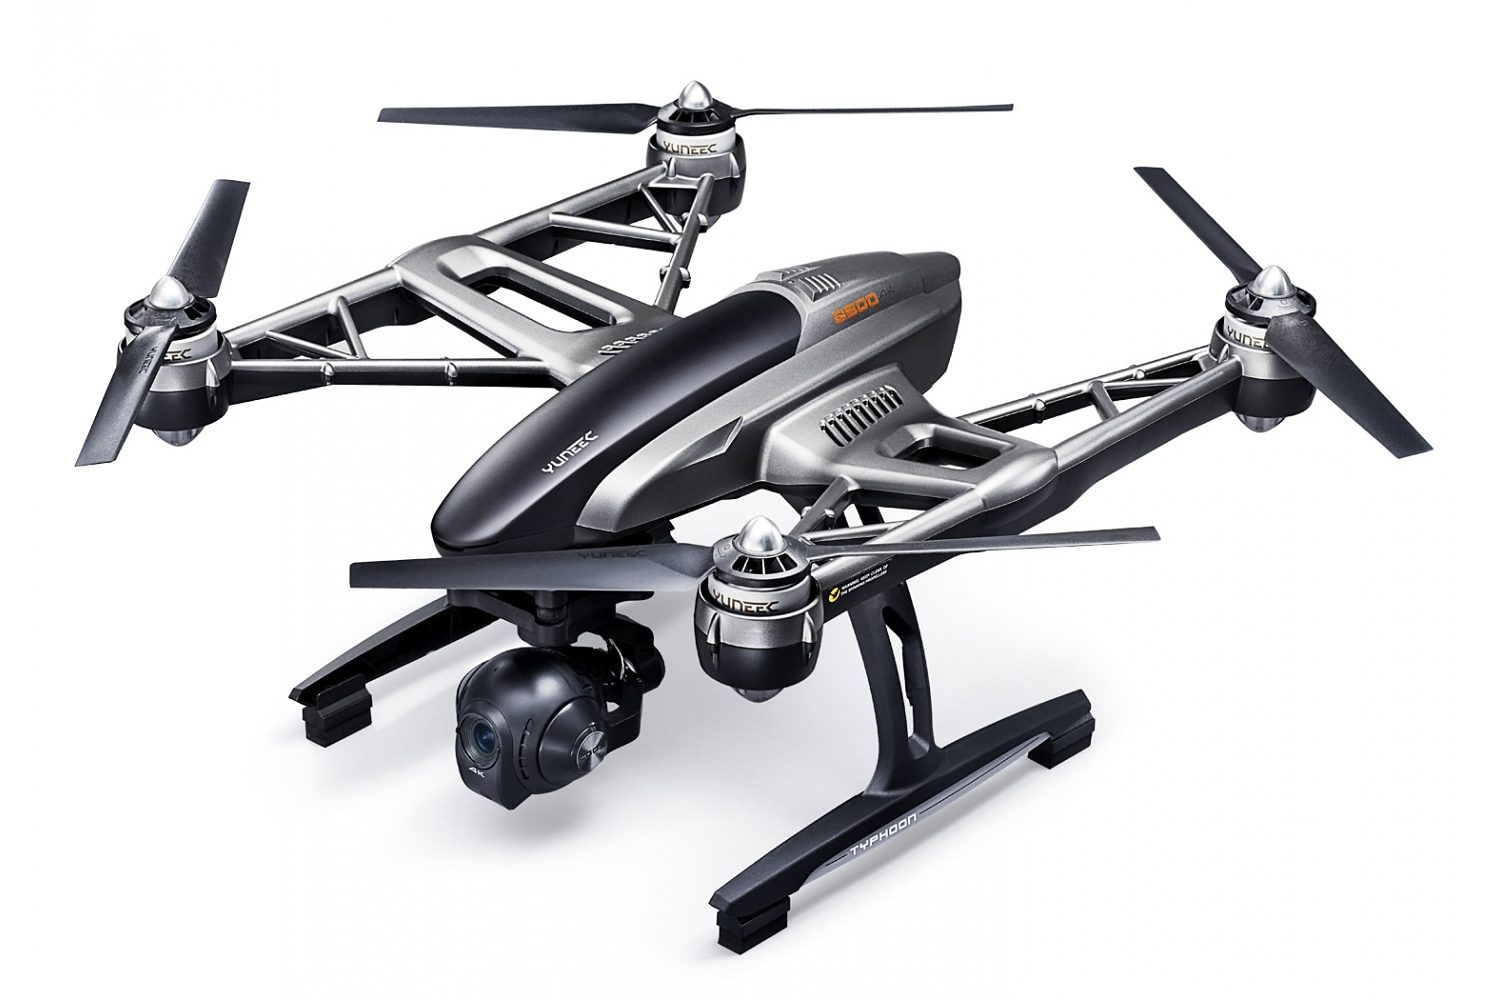 Yuneec Multicopter, Quadcopter »TYPHOON Q500 4K - Set inkl. Trolley + 2 Akkus«